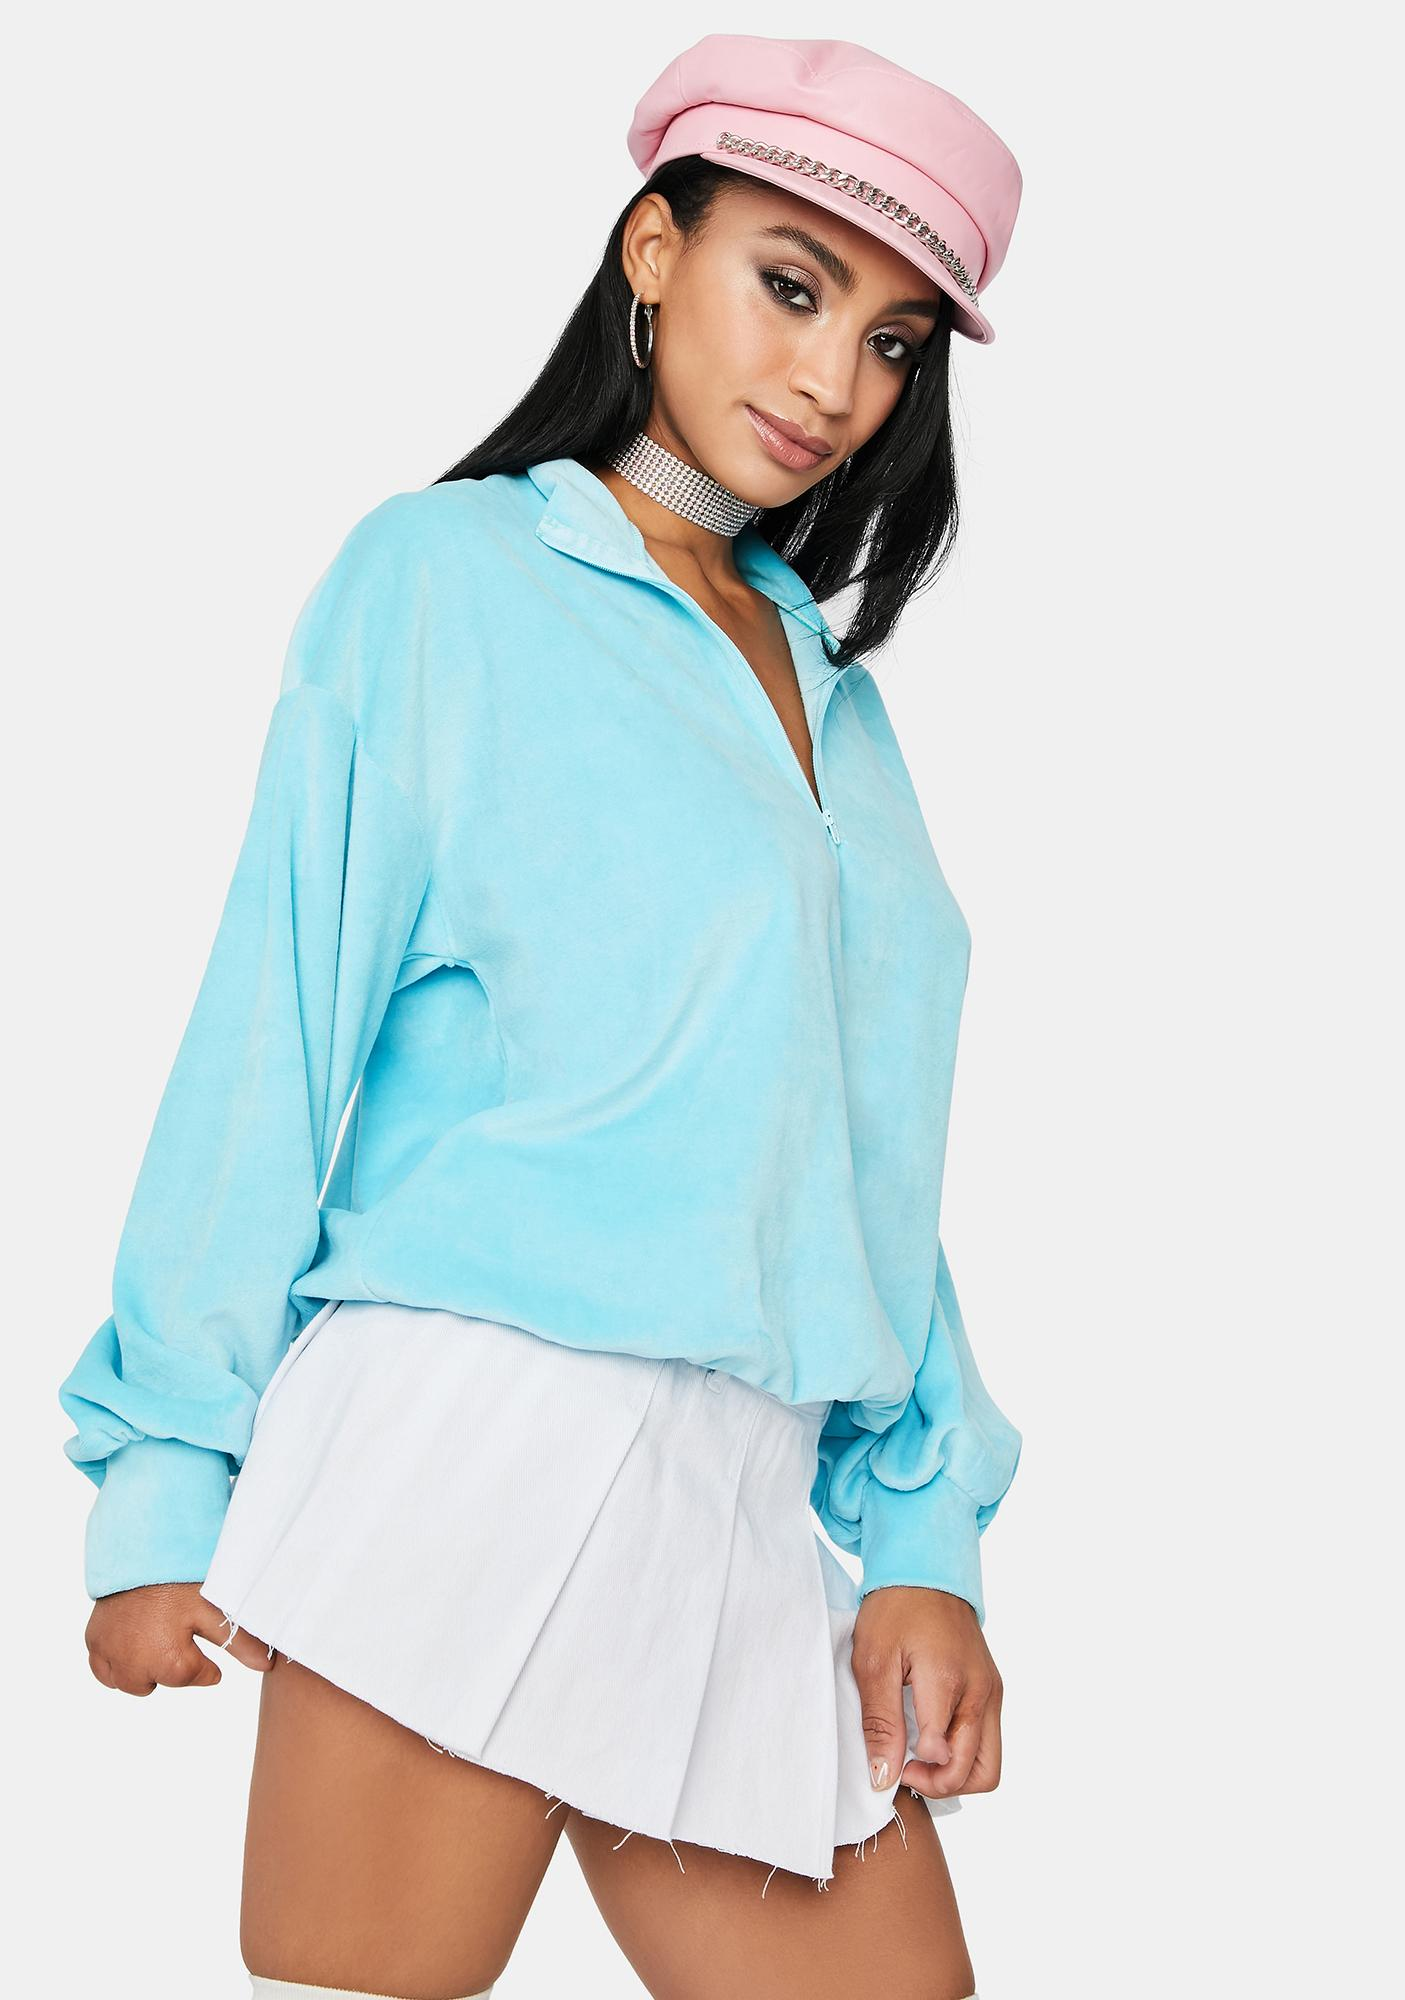 Out Of The Blue Pullover Sweatshirt